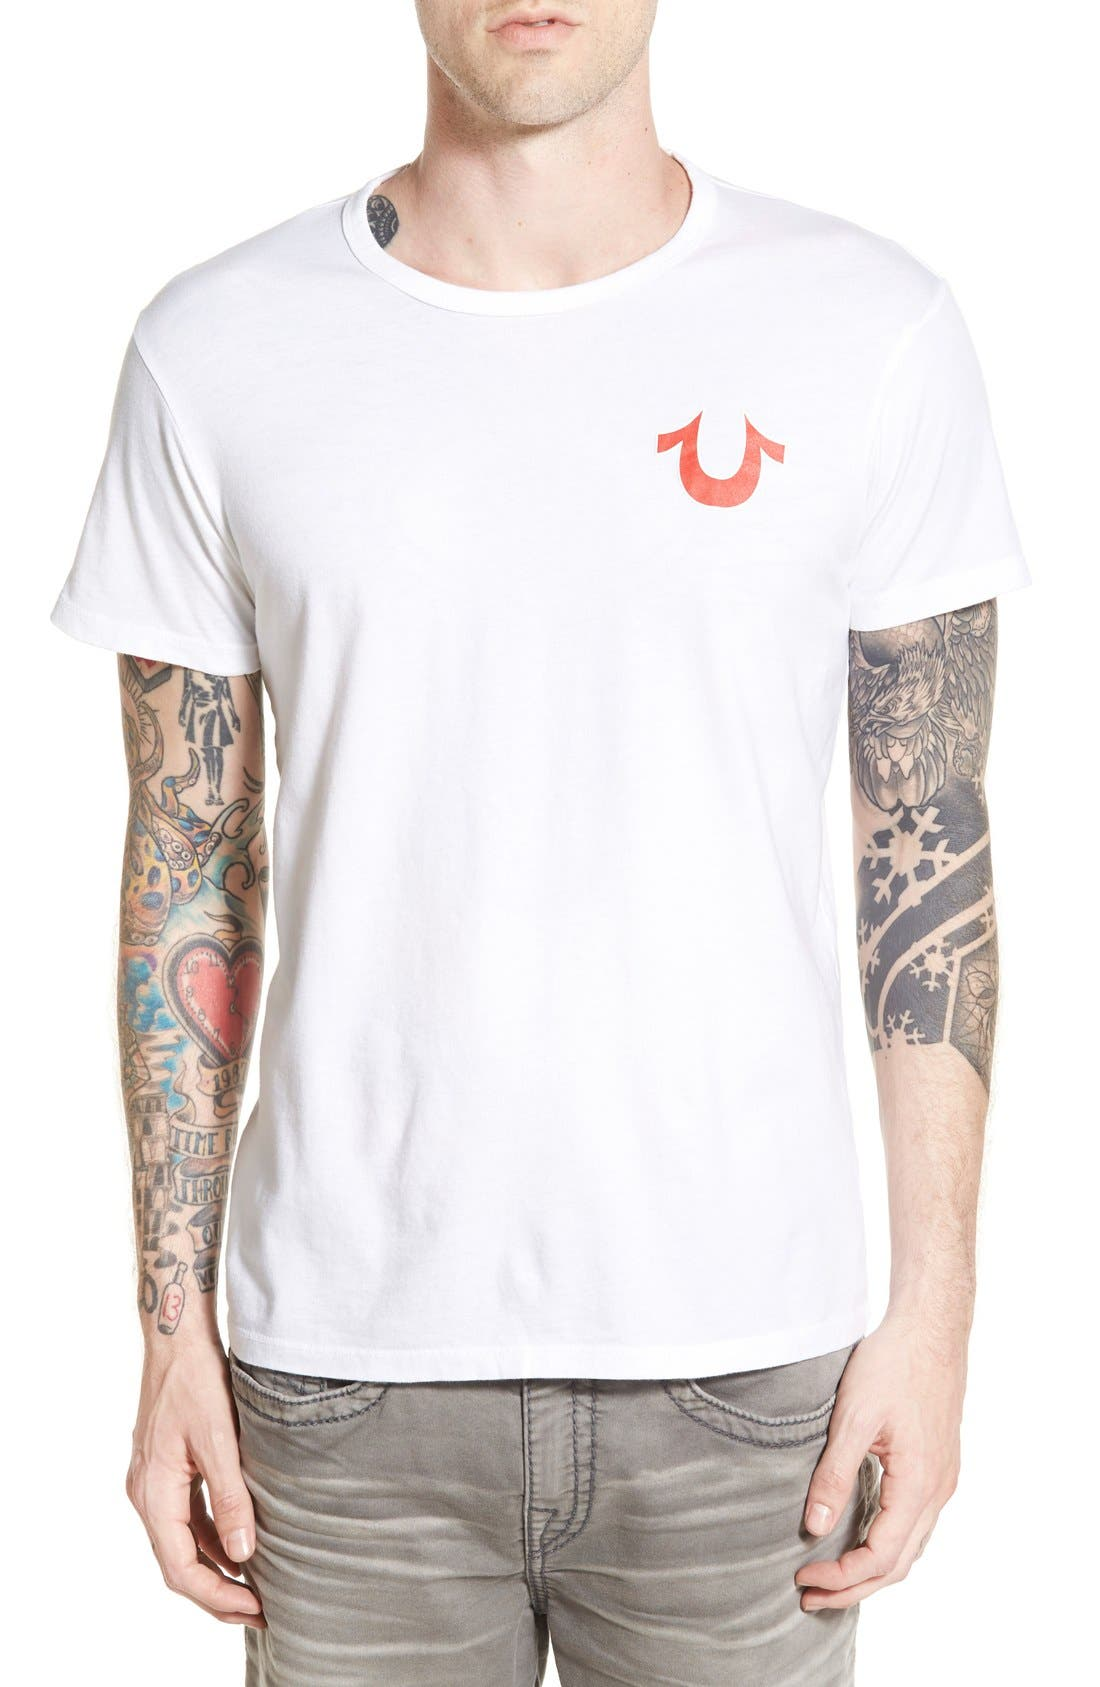 True Religion Brand Jeans 'Double Puff' Graphic Crewneck T-Shirt